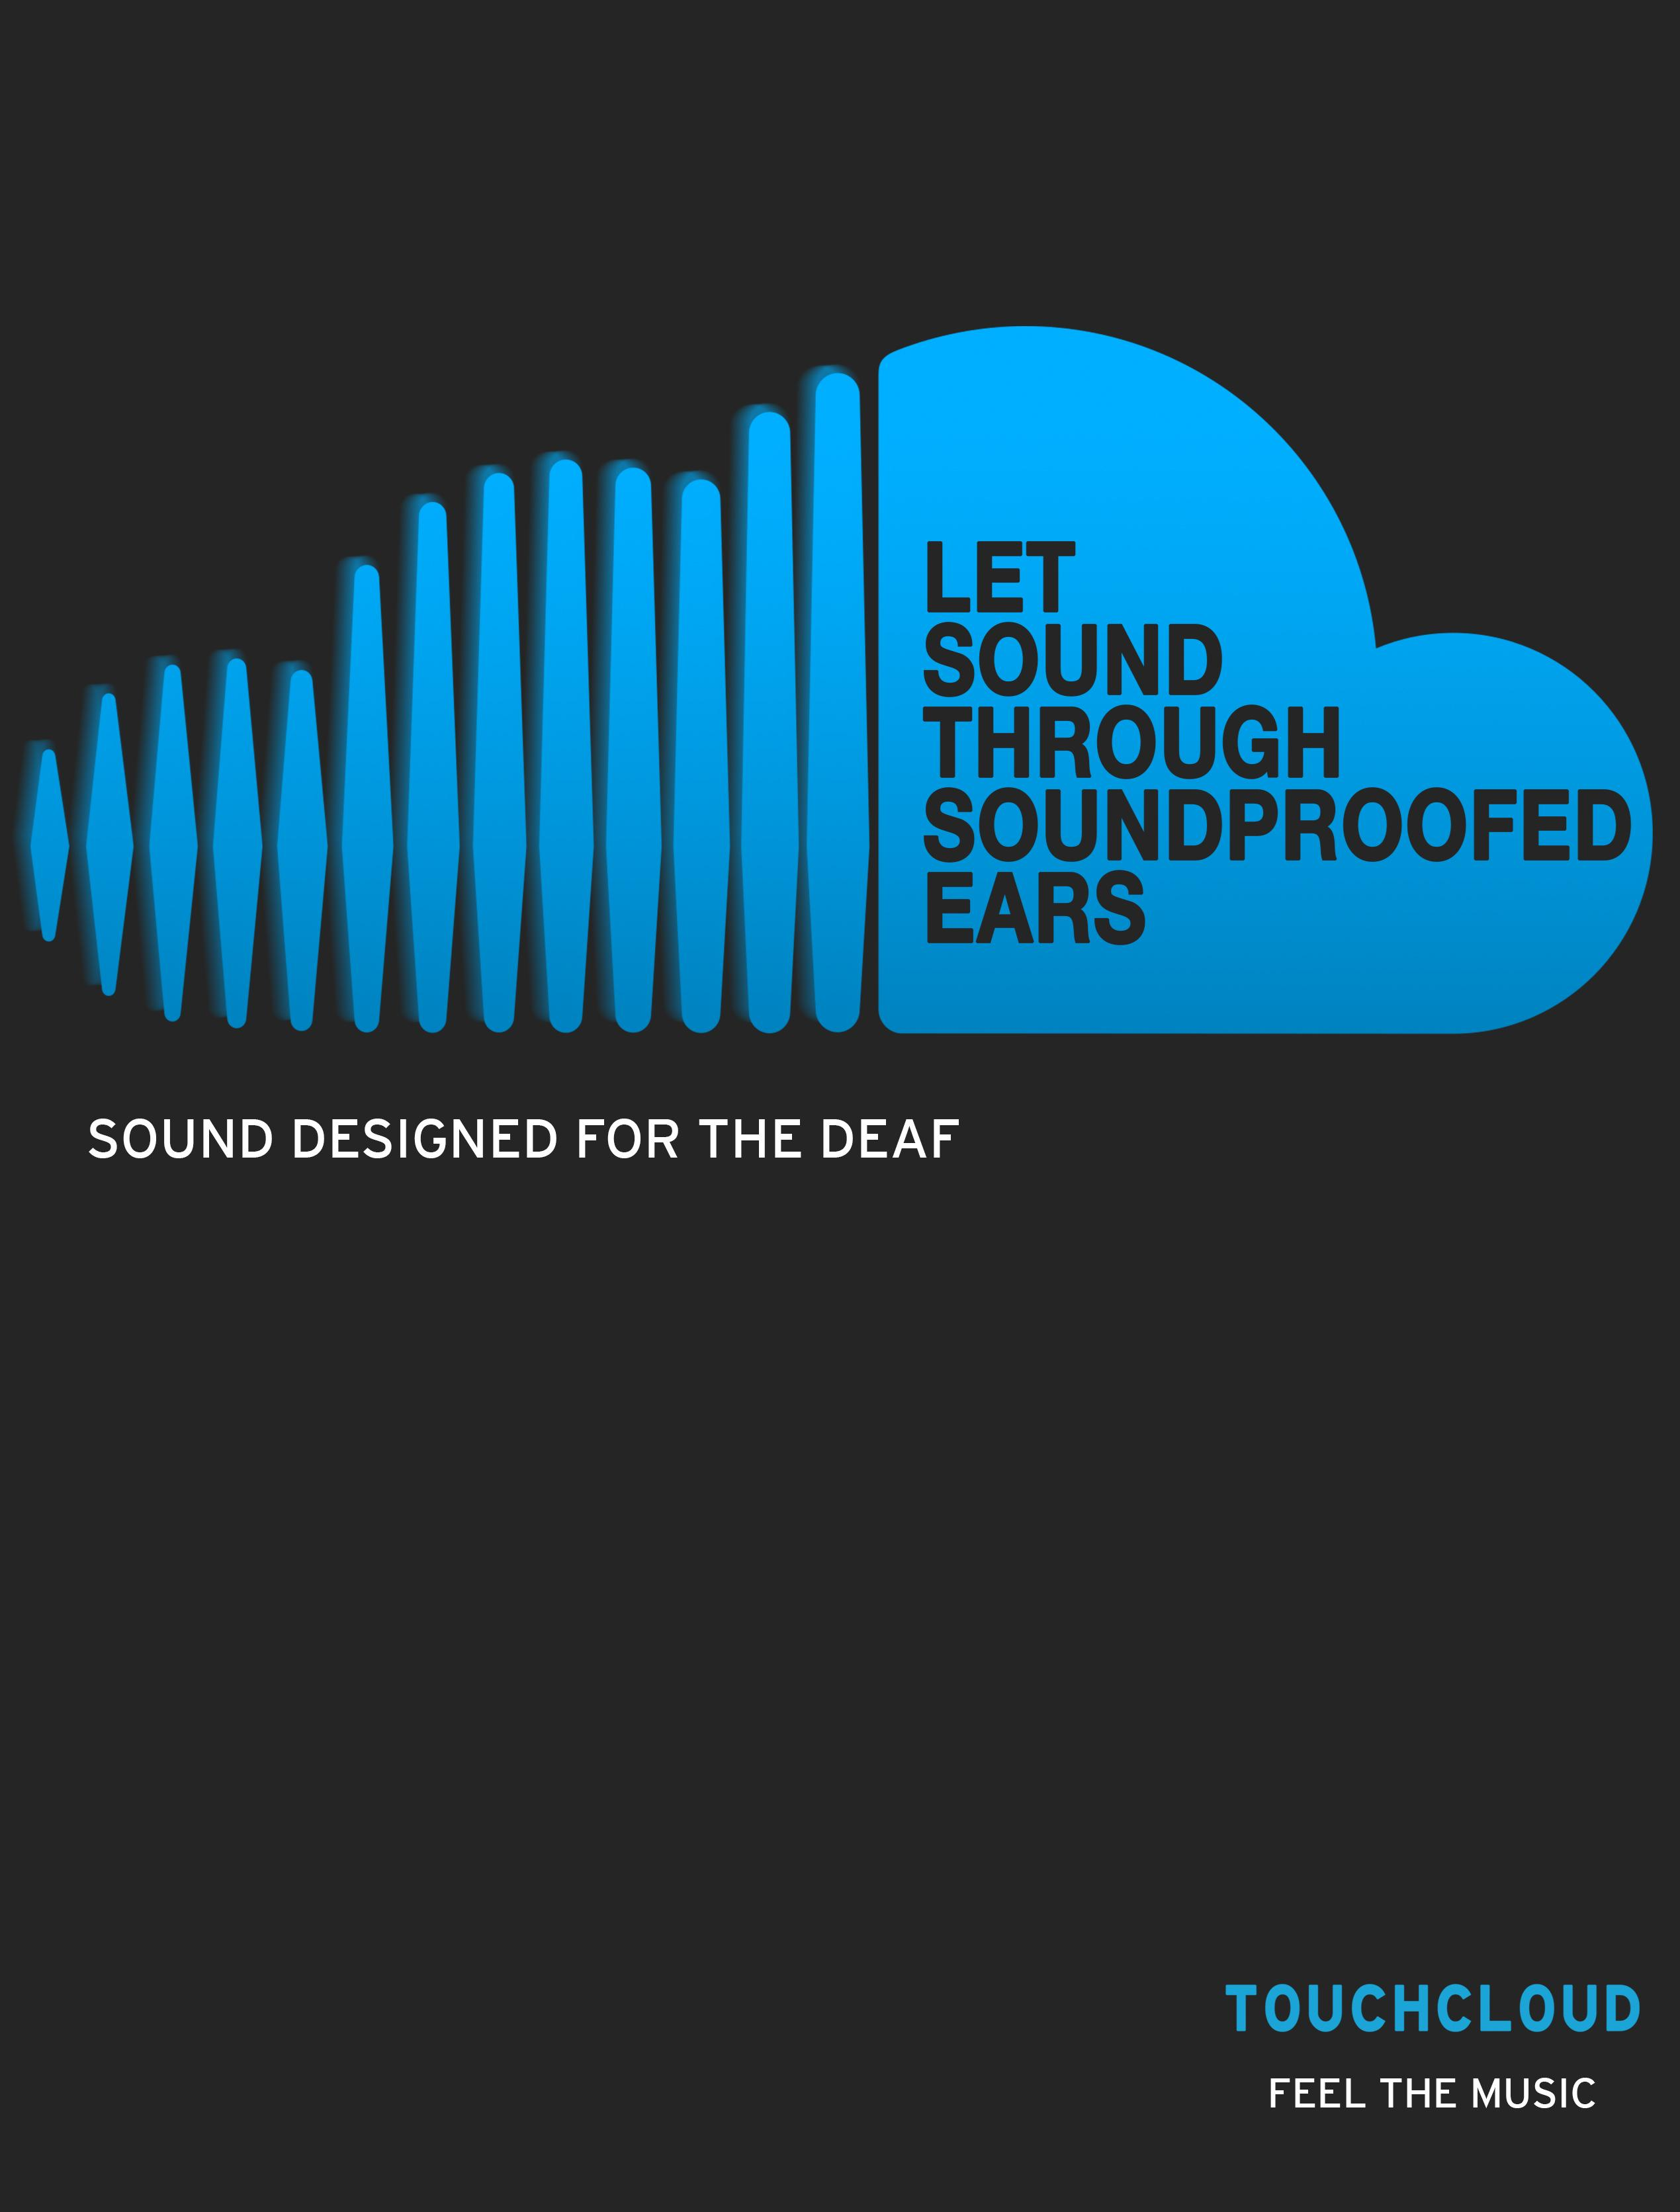 SoundCloud Integrated Ad - TouchCloud – Feel The Music